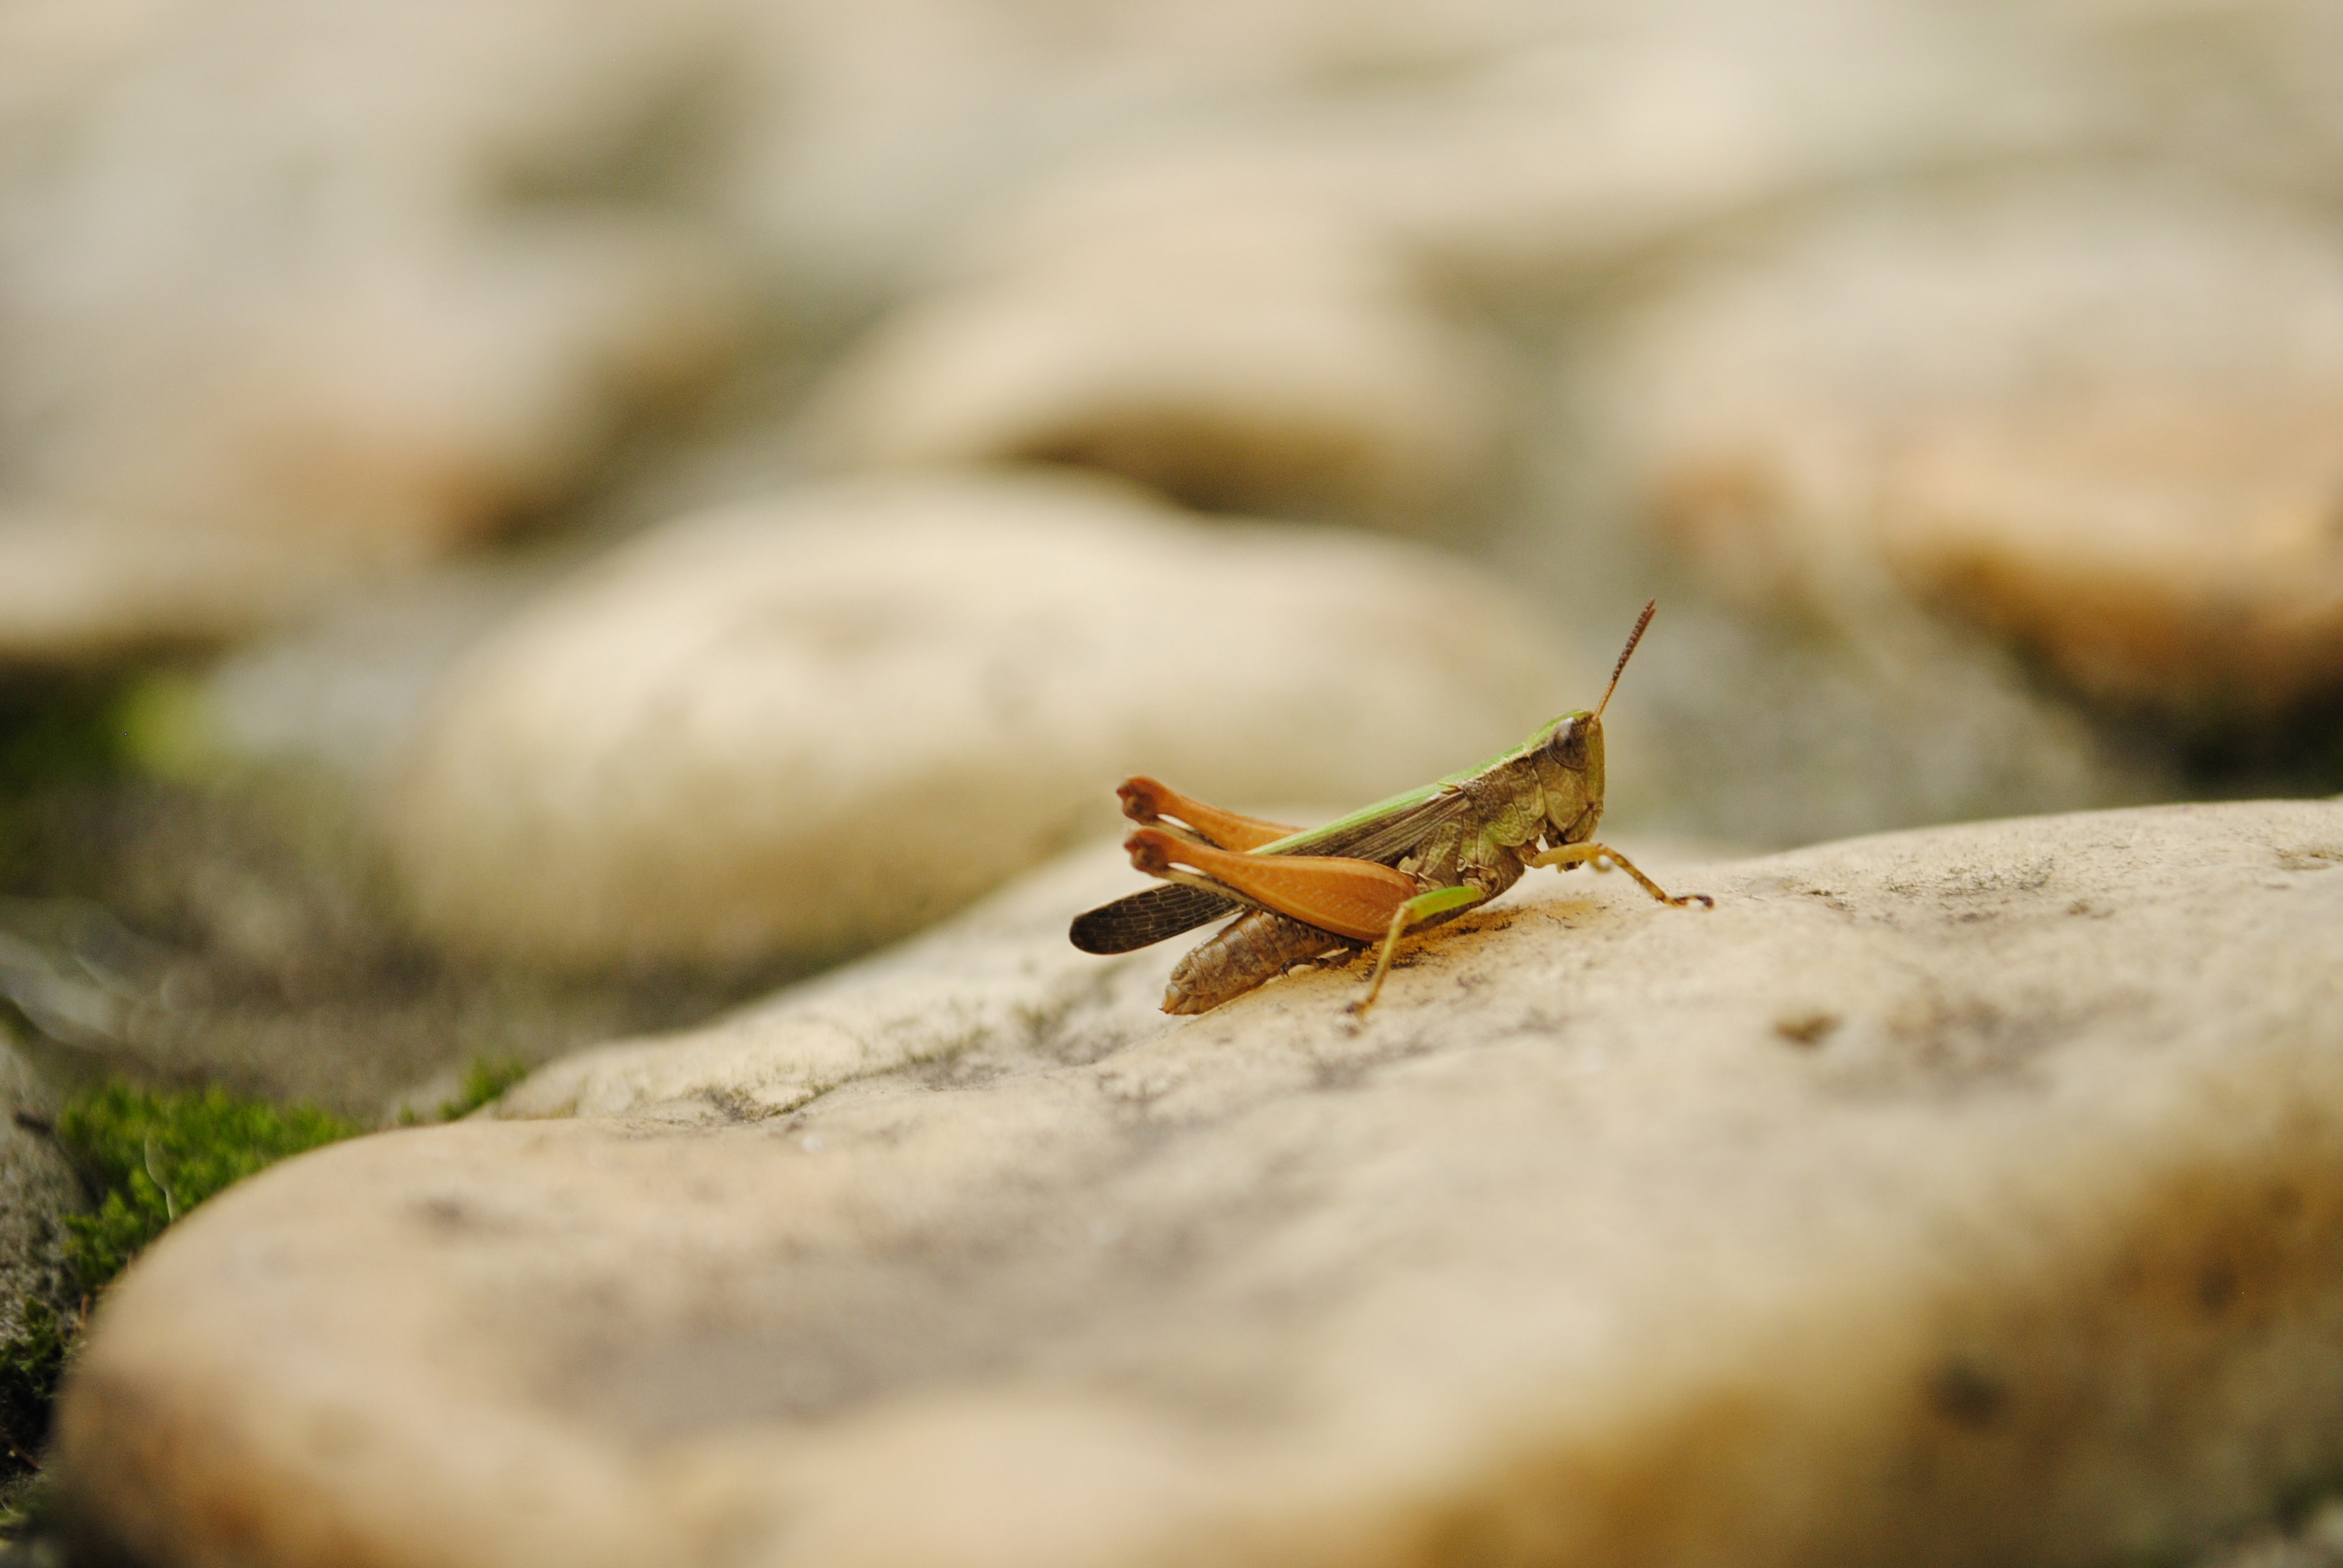 Grasshopper perched on a slab of stone